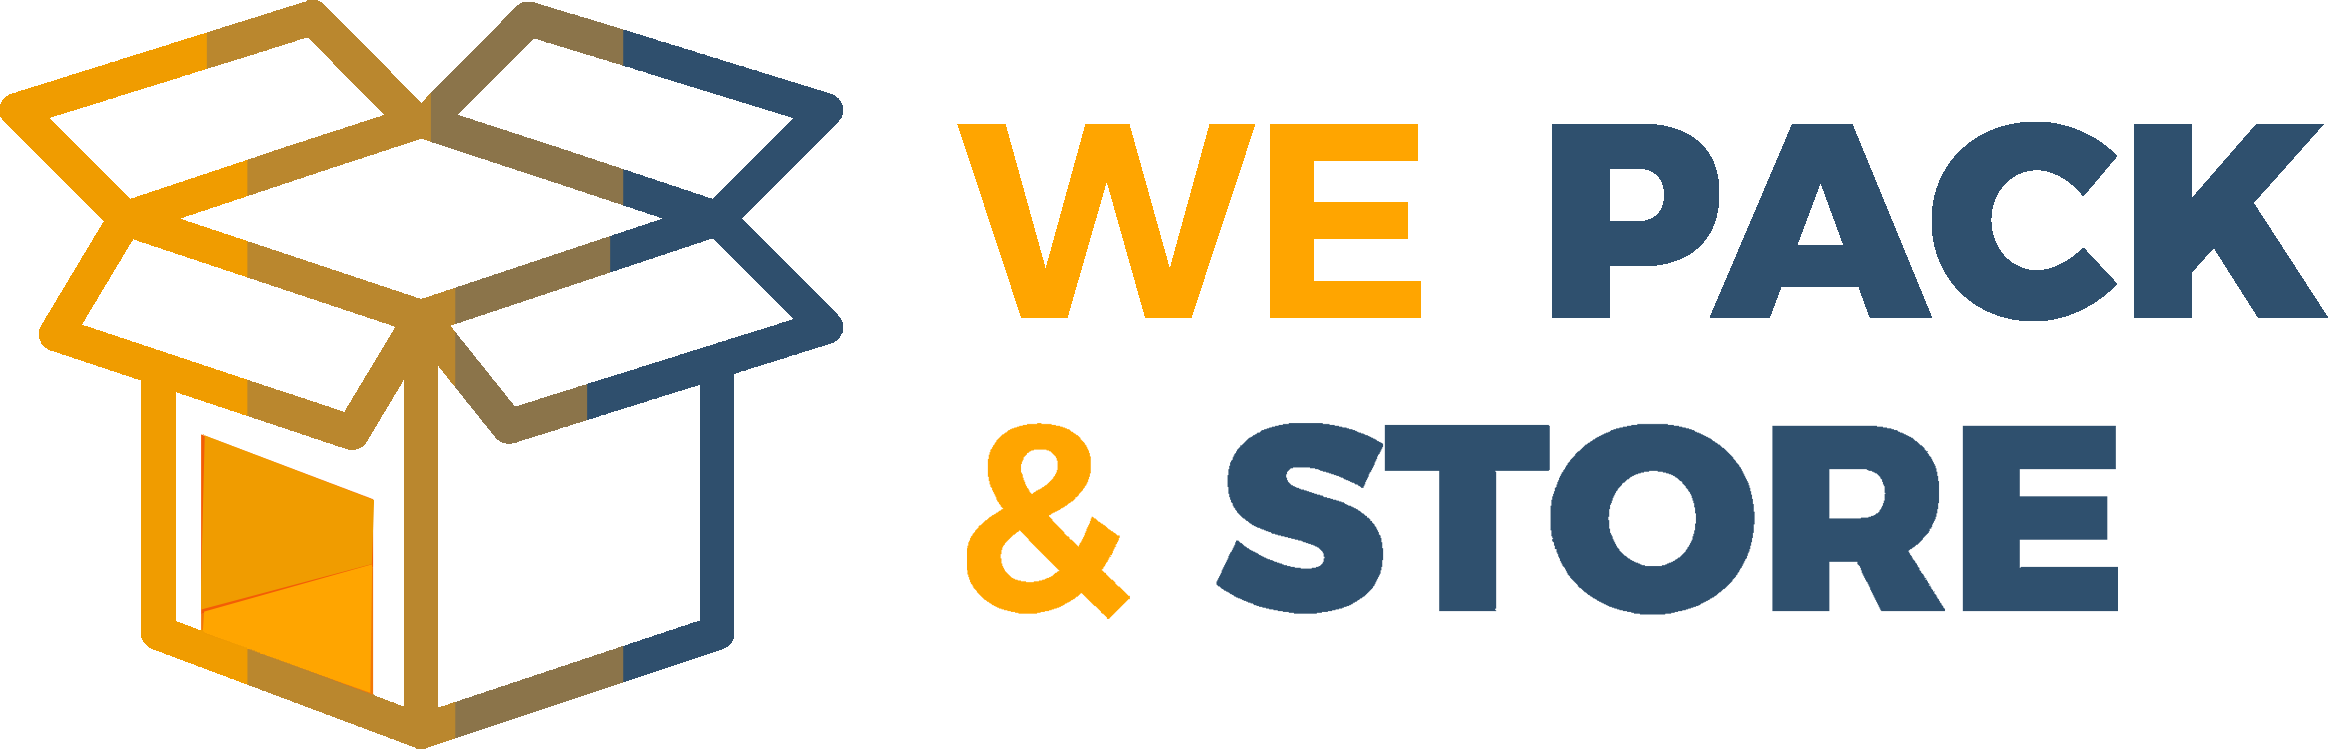 We Pack & Store